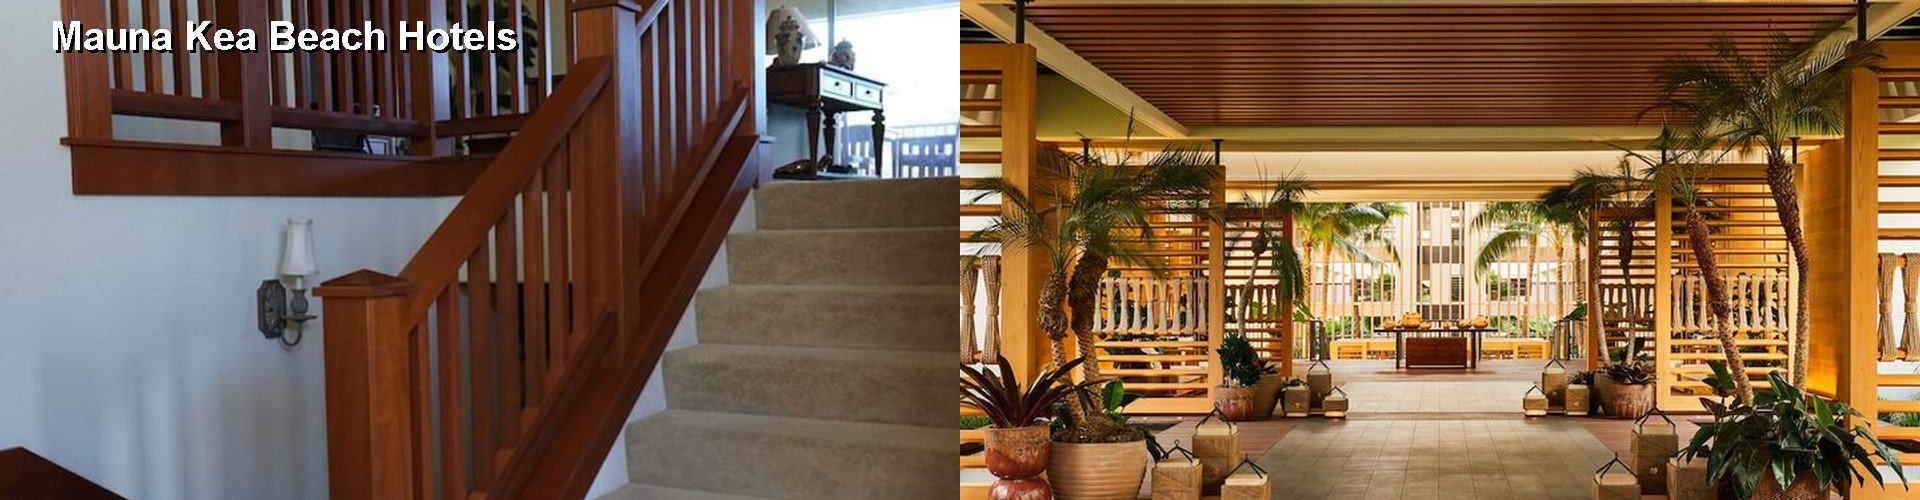 5 Best Hotels near Mauna Kea Beach